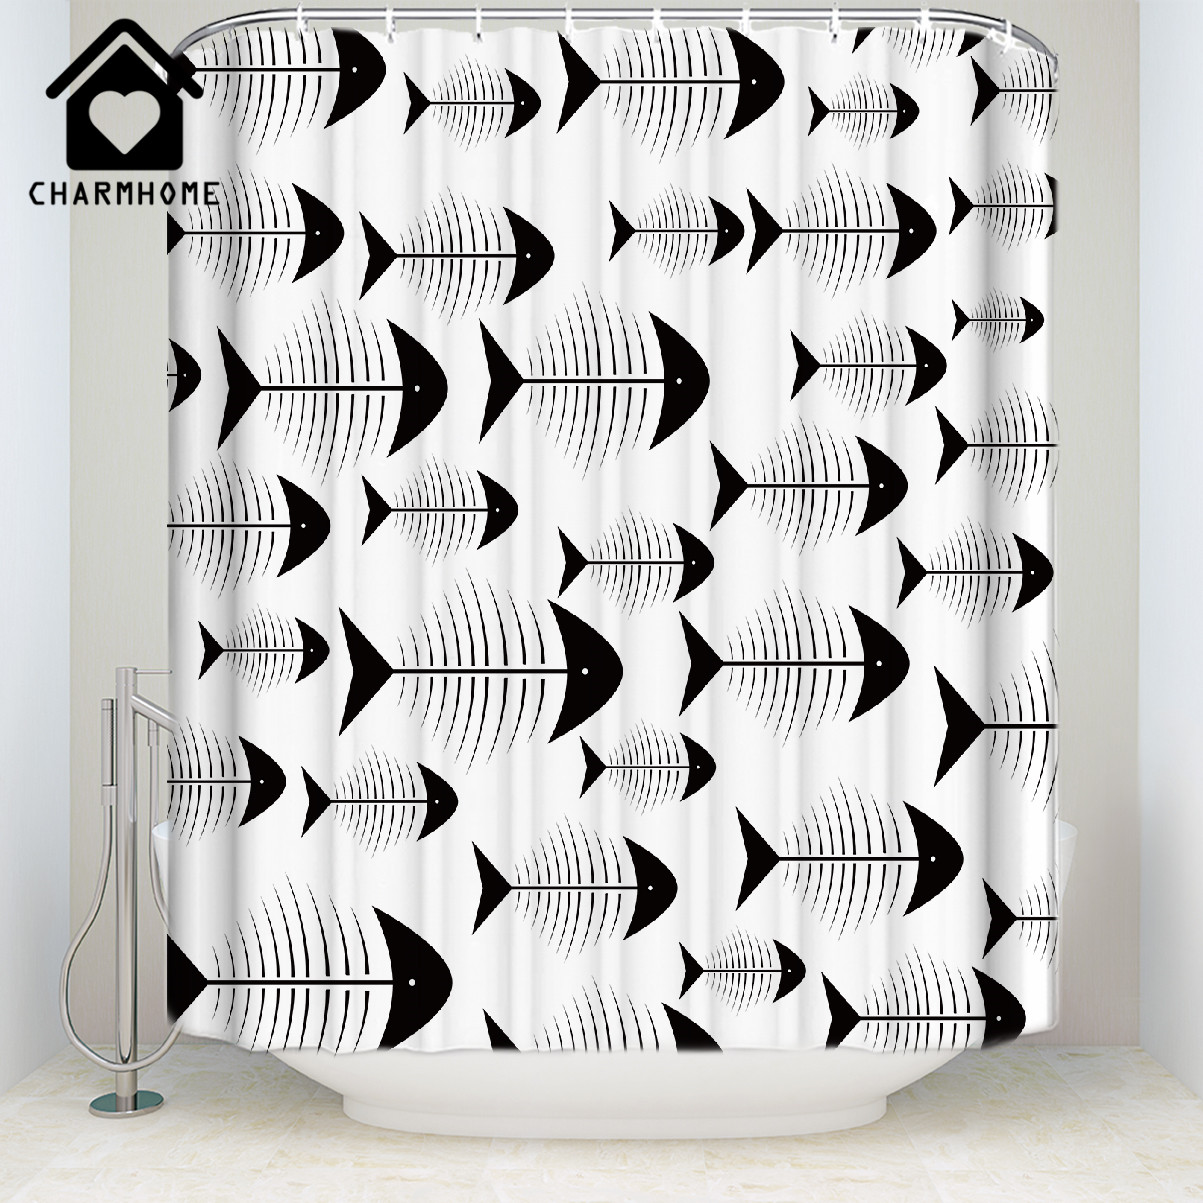 Buy bathroom accessories fish and get free shipping on AliExpress.com